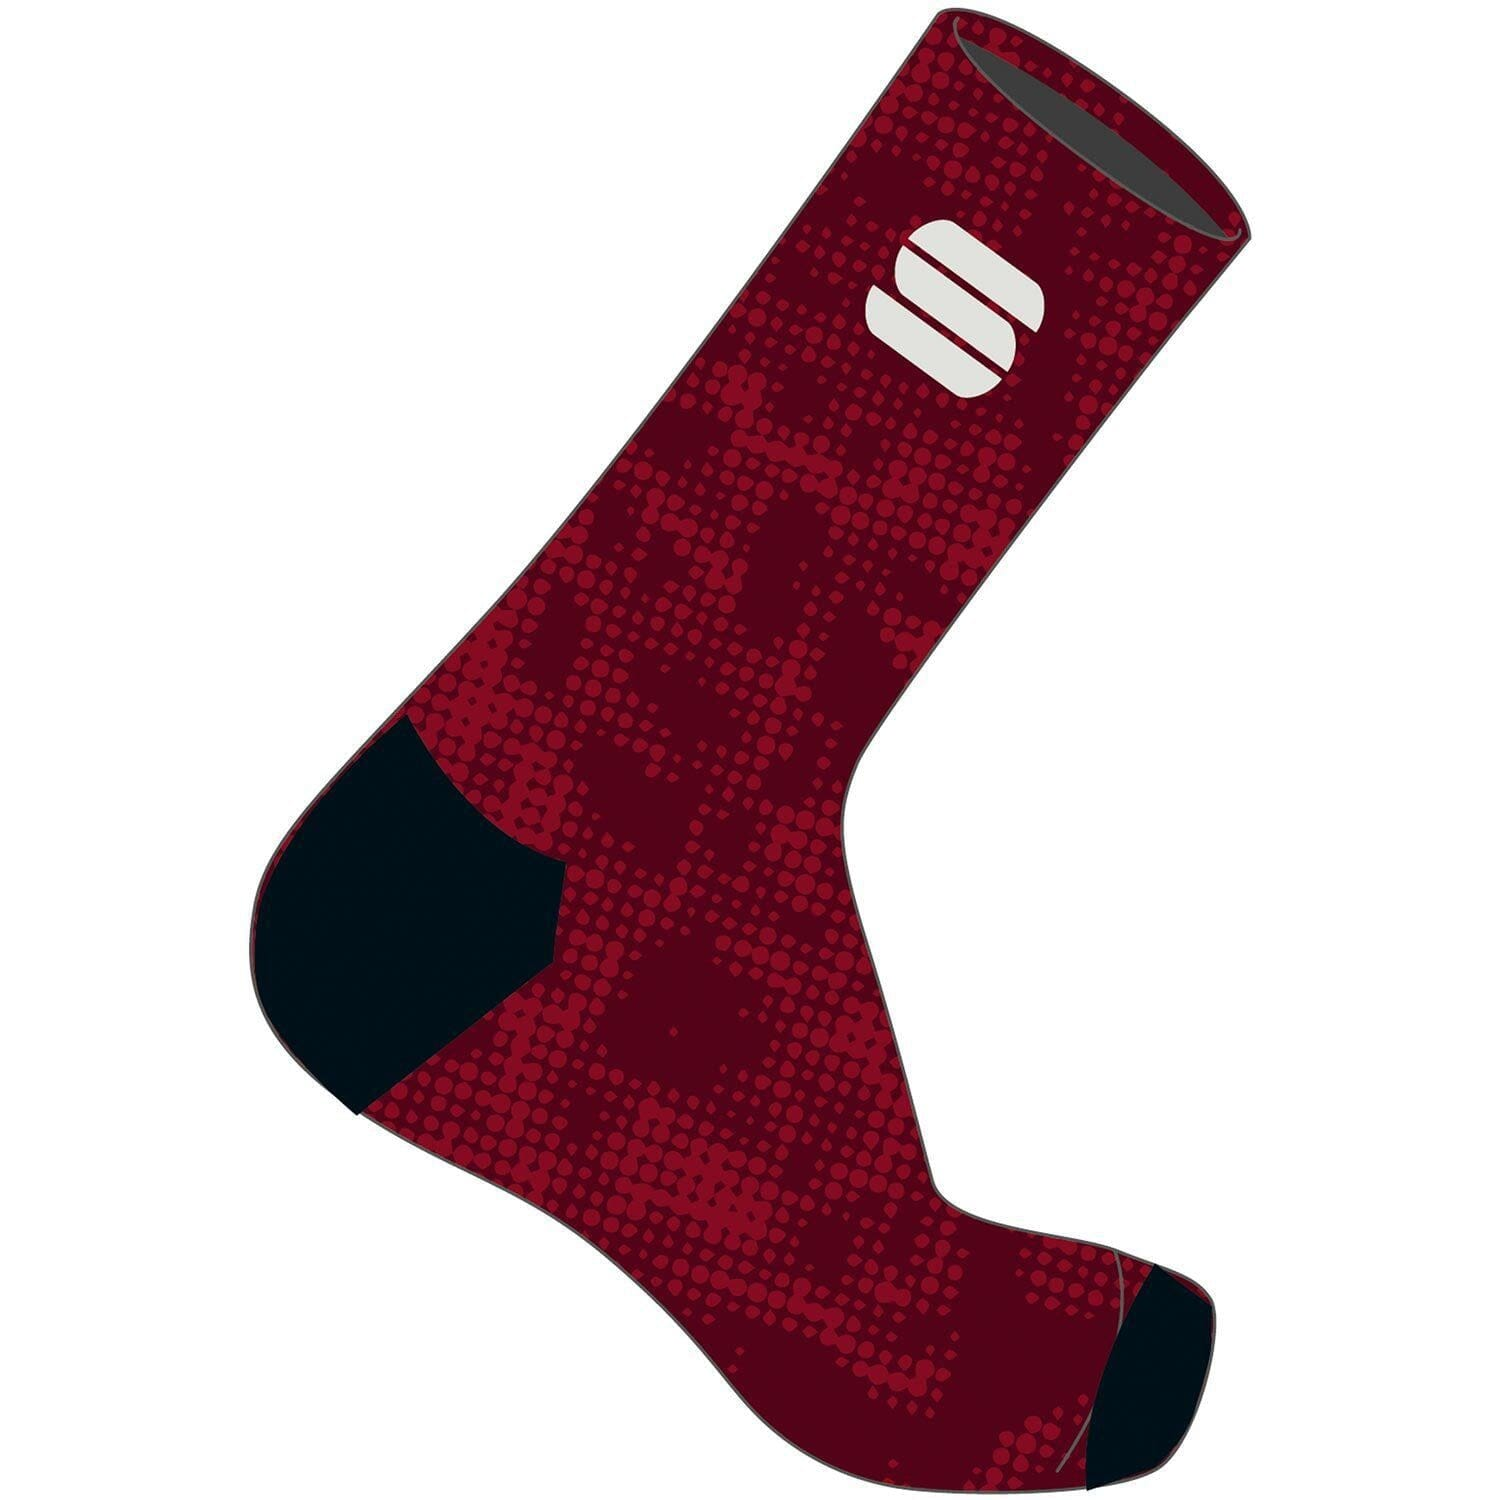 Sportful-Sportful Escape Socks-Red Rumba-S-SF2104362212-saddleback-elite-performance-cycling